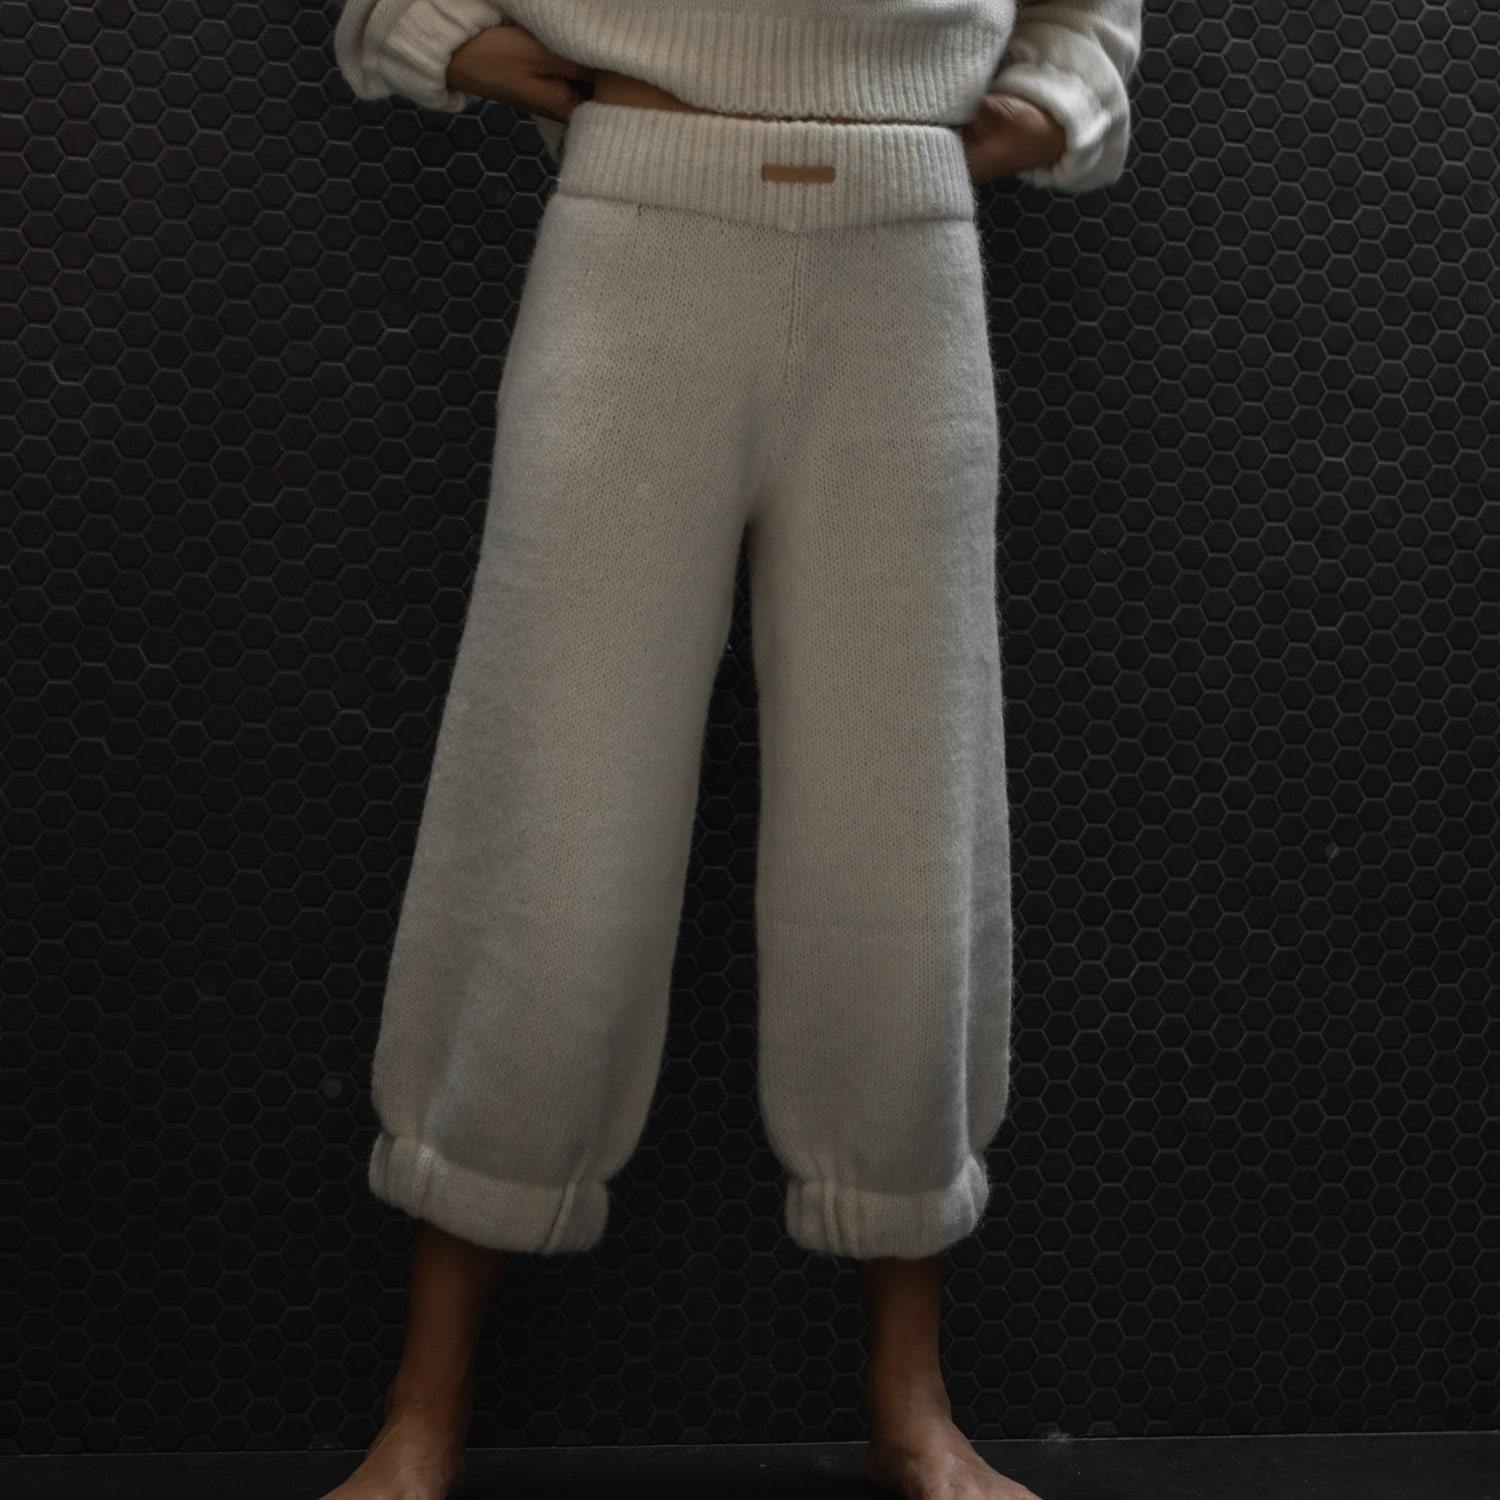 Lunya Sleepwear Cozy Alpaca Knit Pant - #Powder